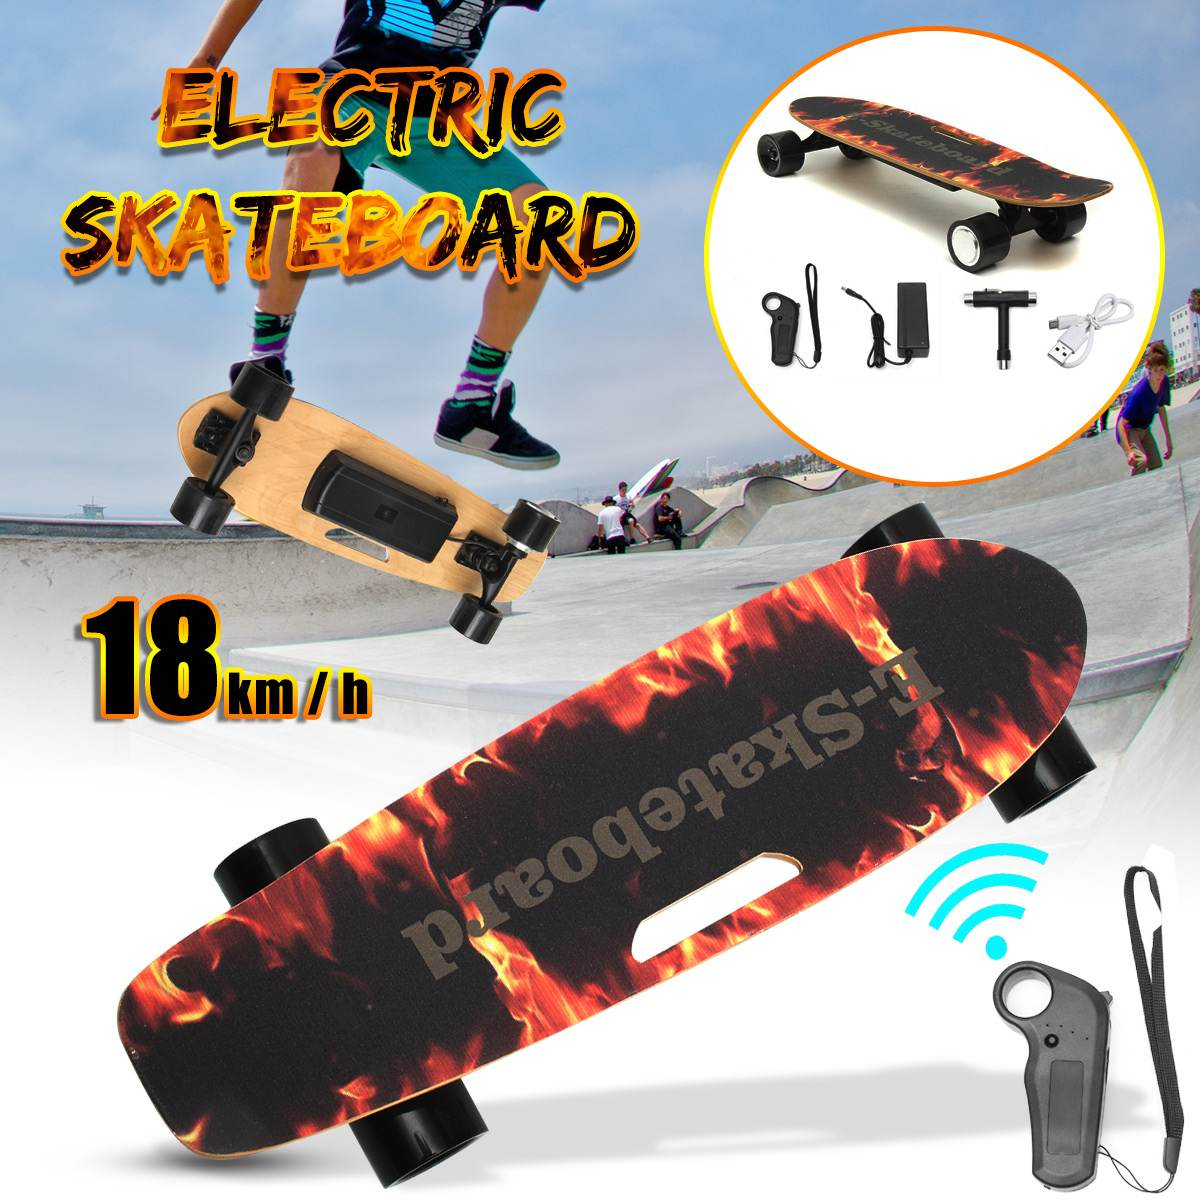 Electric Skateboard Four-wheel Longboard Skate Board Maple Deck Wireless Remote Controll For Adult Children